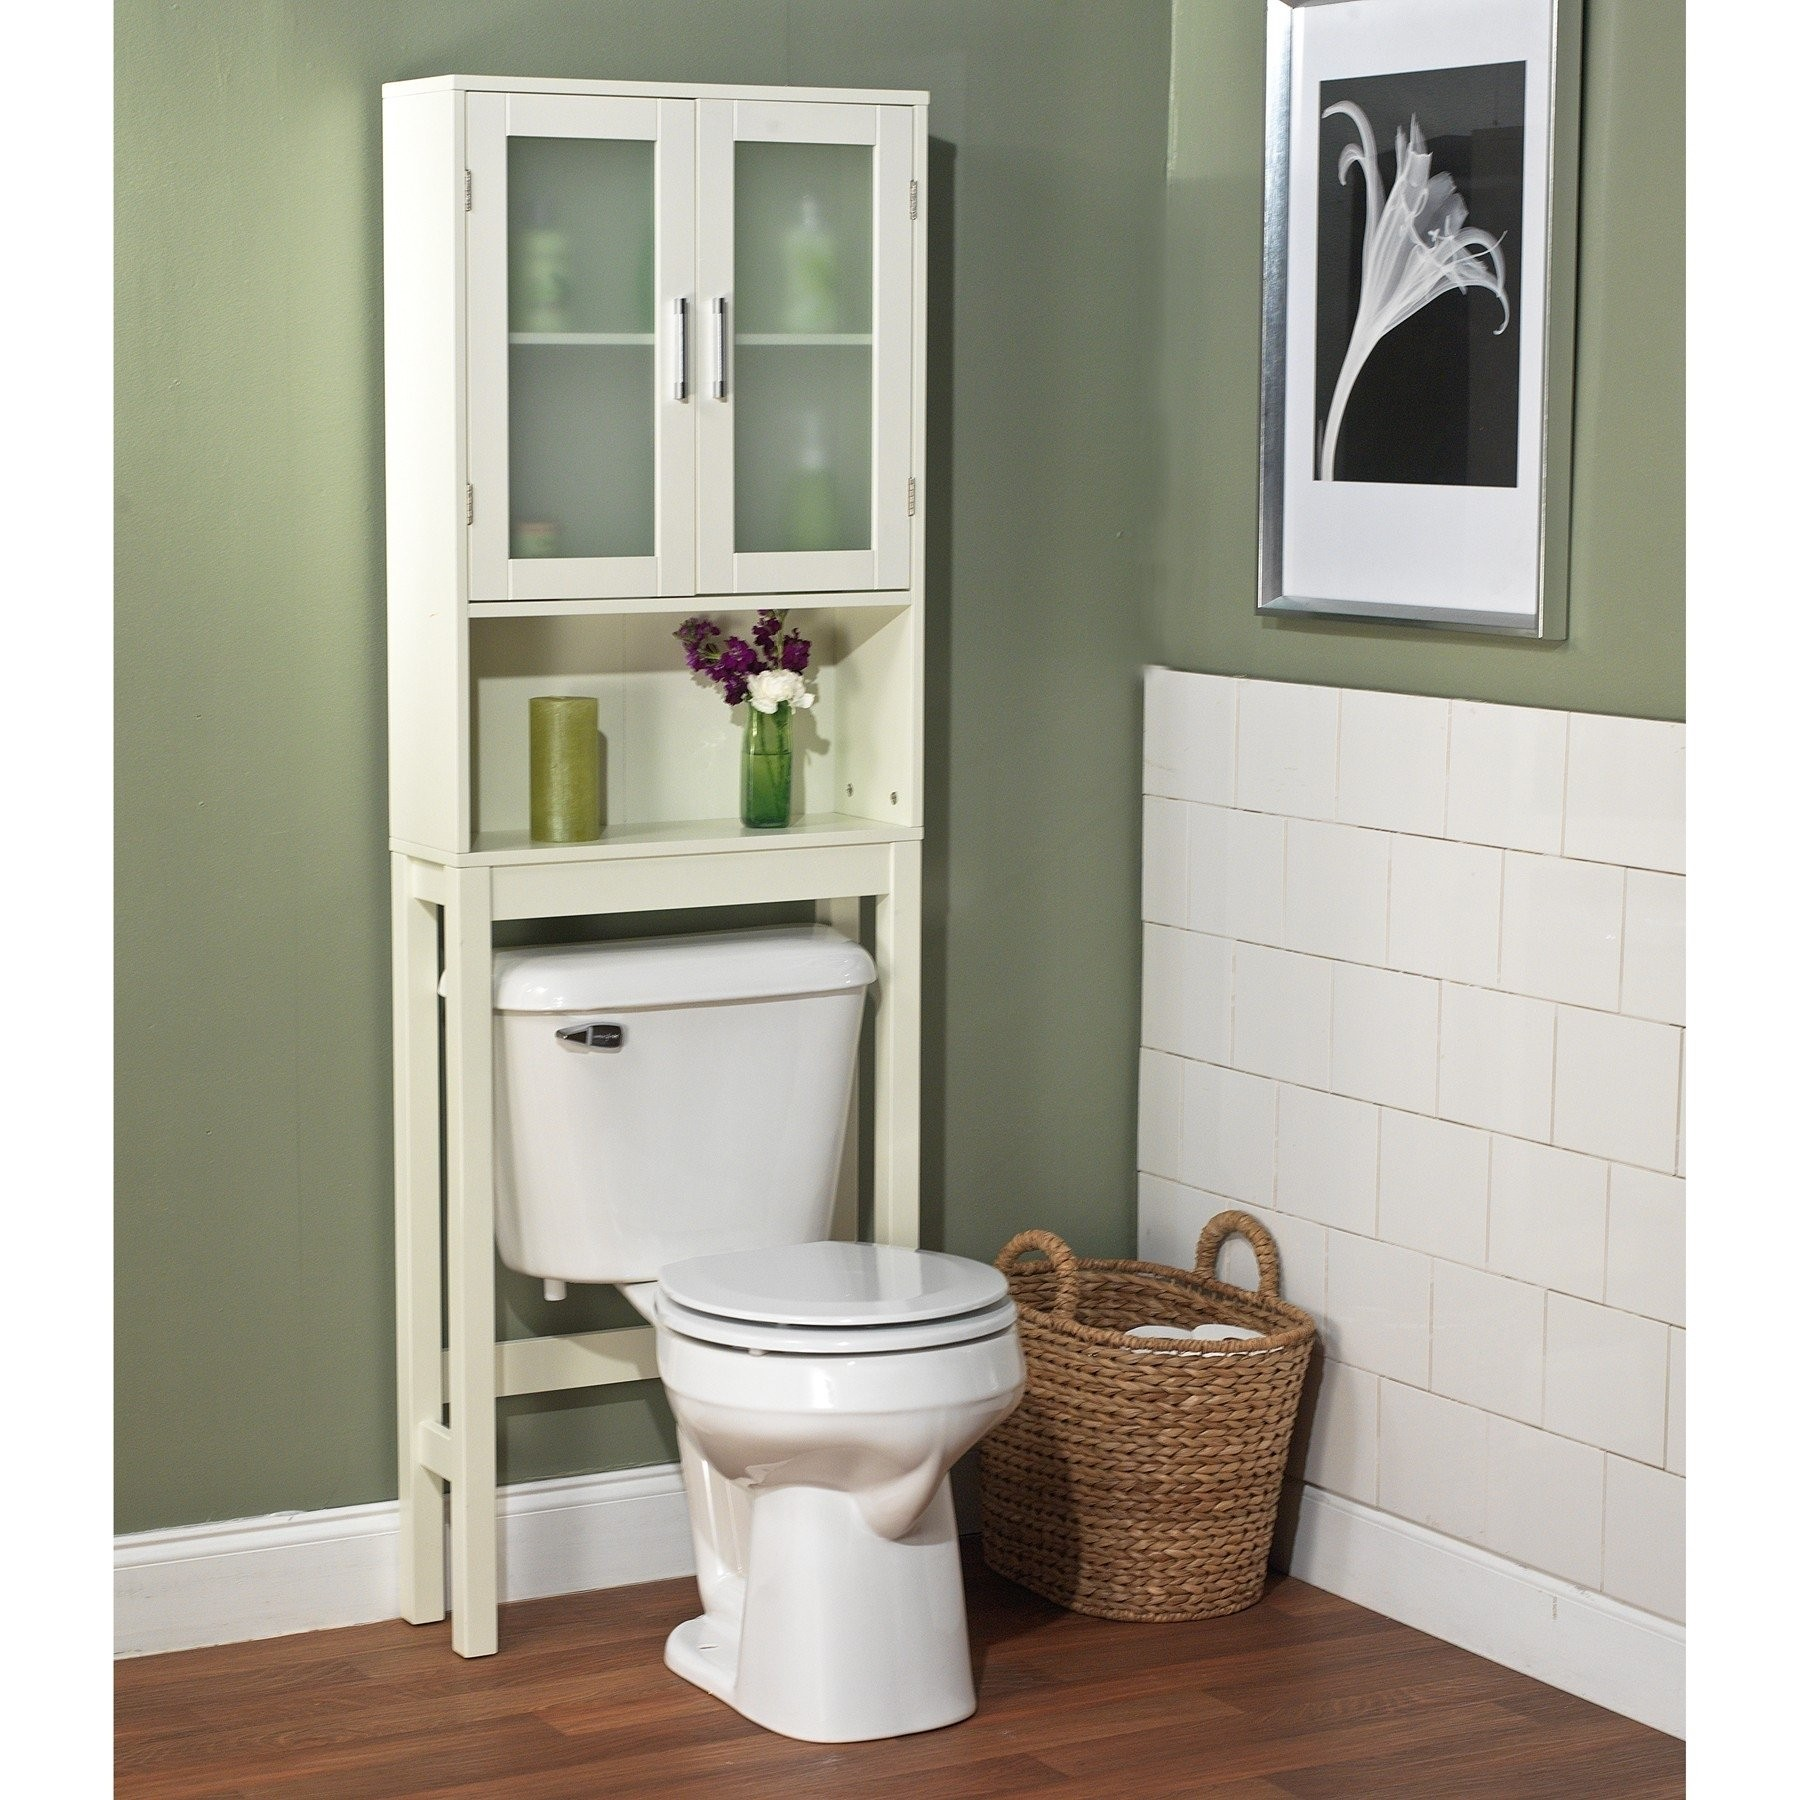 Bathroom Cabinets Over toilet Cool Gorgeous toilet Cabinet for the Bathroom Decoras Online